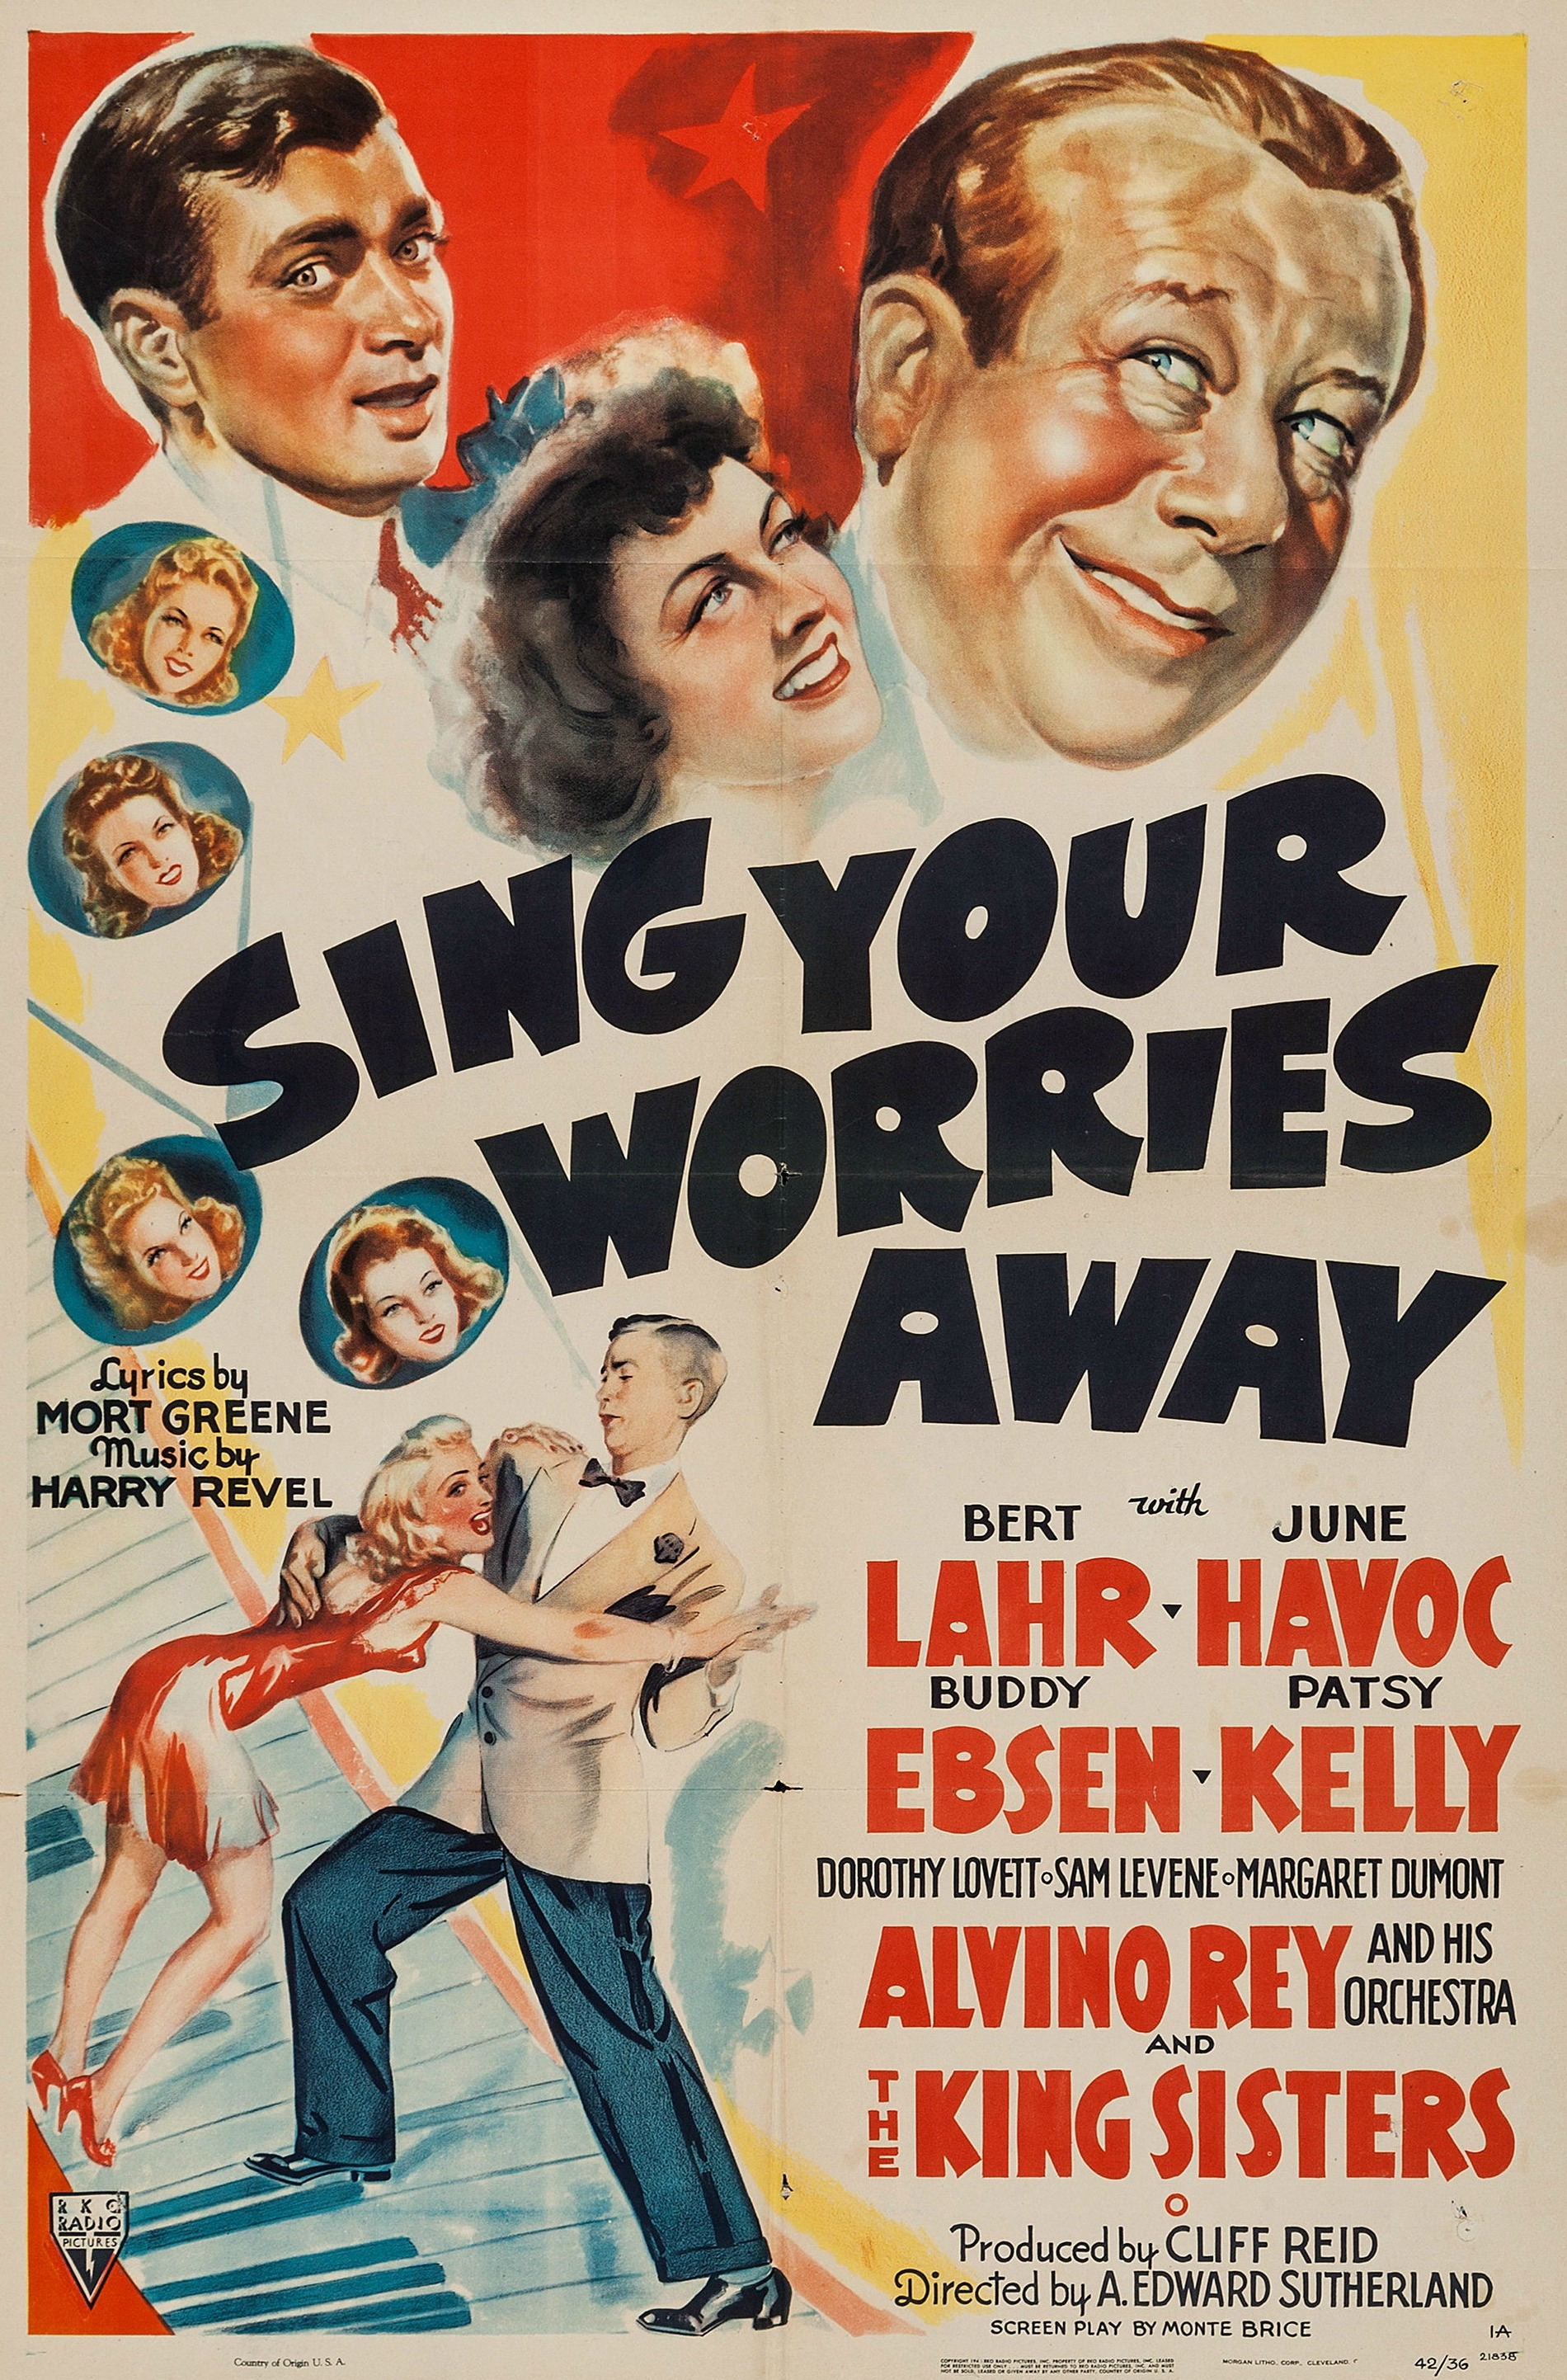 Buddy Ebsen, June Havoc, Patsy Kelly, Bert Lahr, Sam Levene, Dorothy Lovett, and Alvino Rey in Sing Your Worries Away (1942)